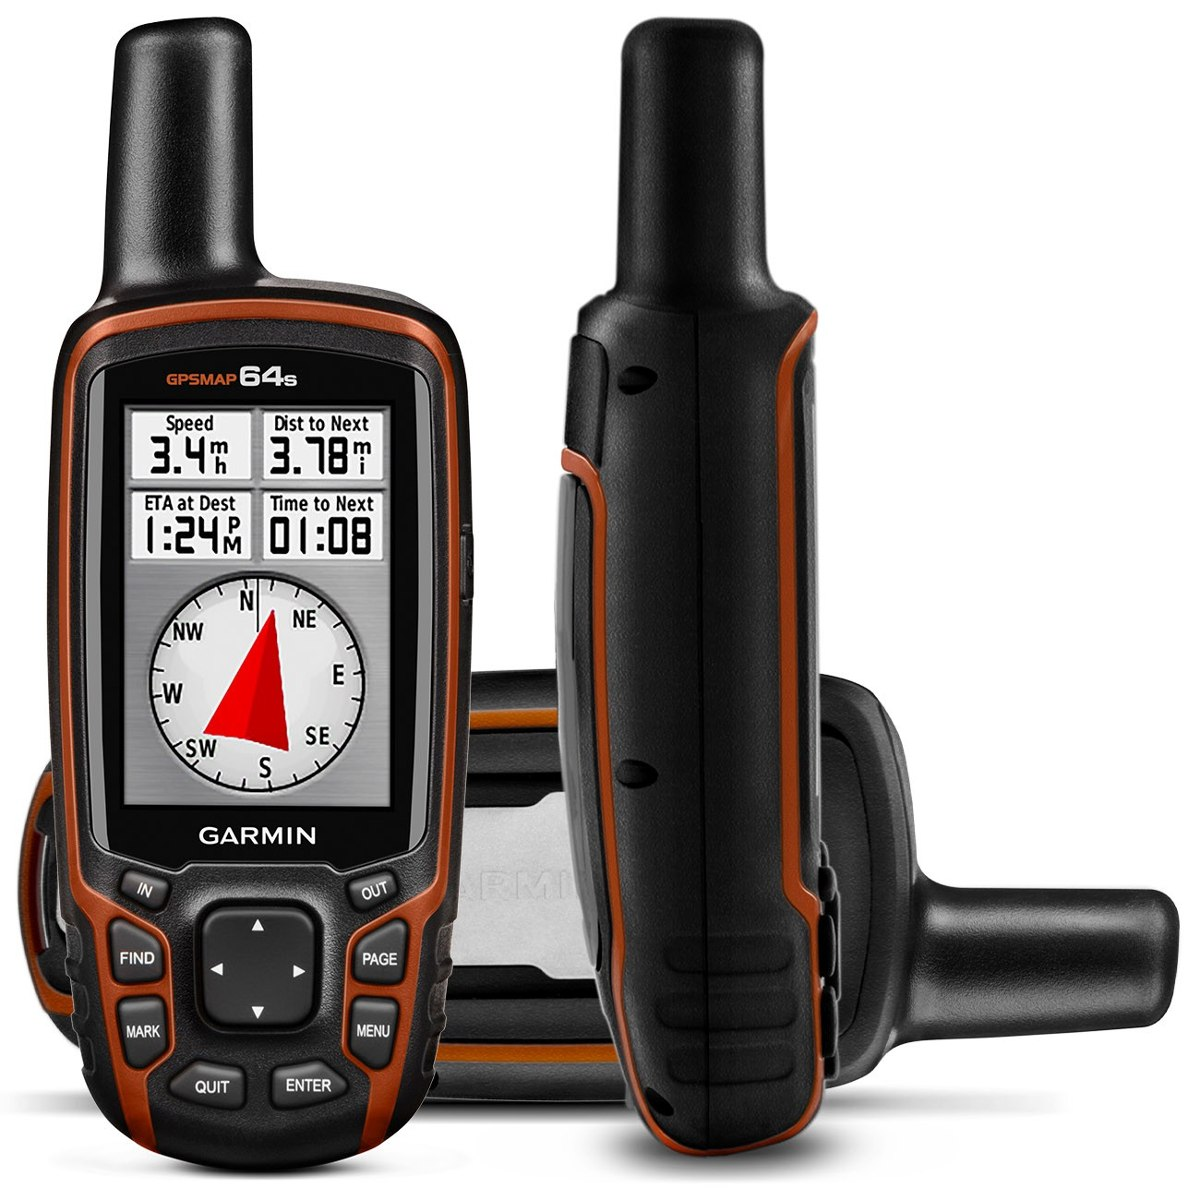 garmin map 64s with Mlb 703772618 Gps Garmin Map 64s Memoria 4gb Touch Screen Cabo Usb Frete  Jm on Test Honor 7 Smartphone 148376 0 likewise Products together with Acessorios Para Motos 150 additionally 149523 Garmin Gpsmap 64s Discoverer Bundle With Gb 1 50k Os Map furthermore Garmin Gpsmap 64s Handheld Gps Unit.